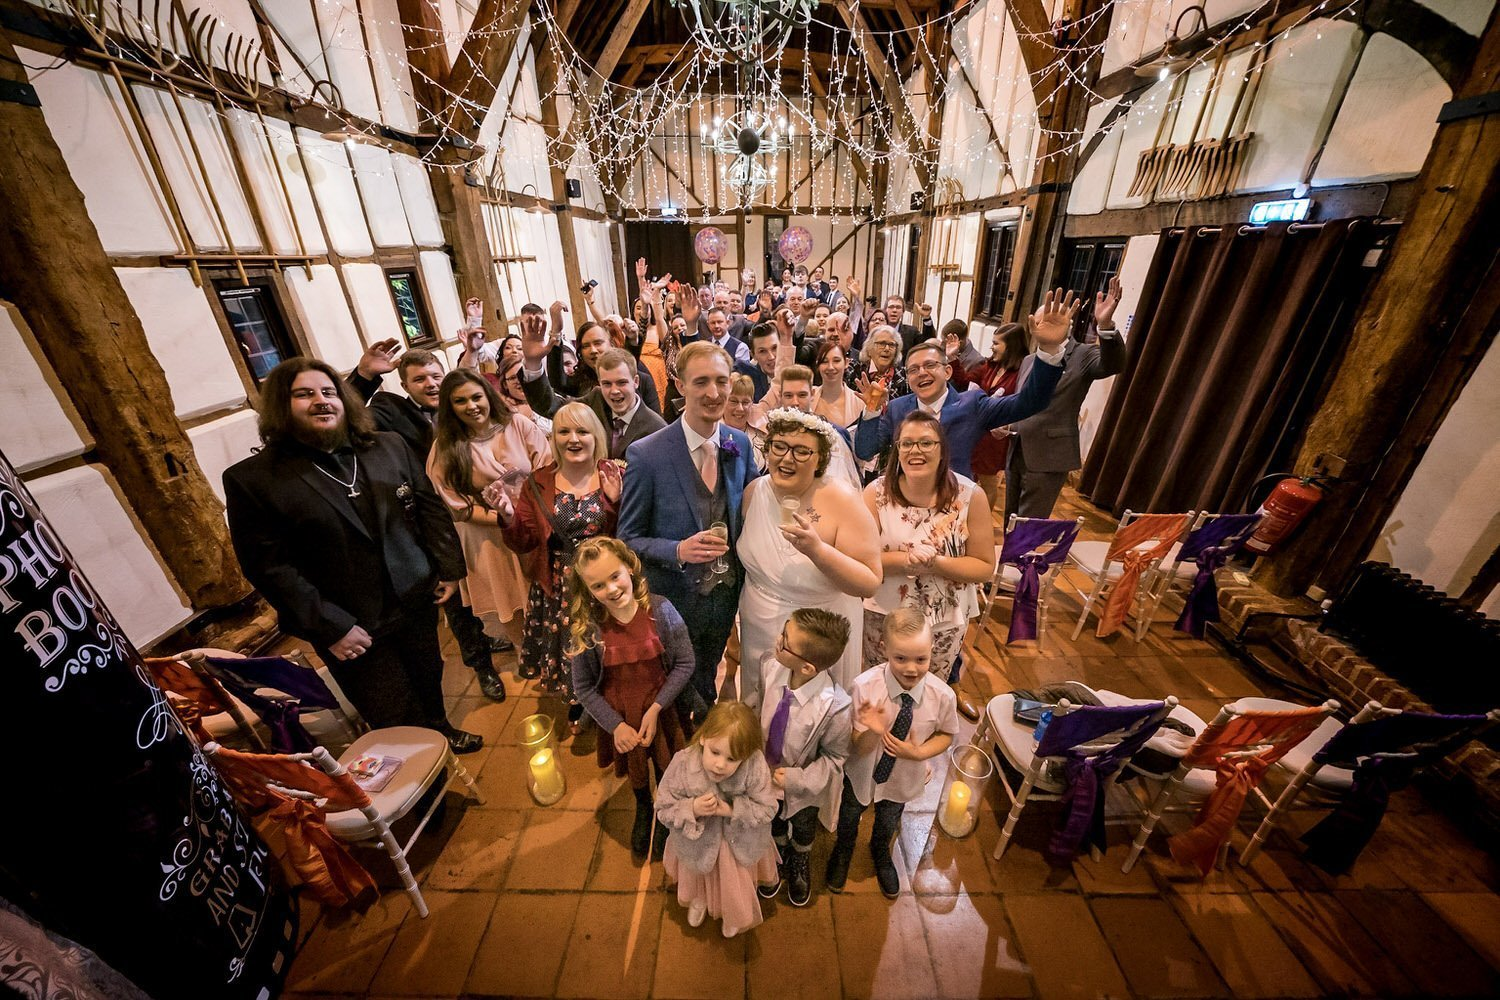 The Barns Hotel Bedford Wooten Weddings Photography All wedding guests in a group photo in the main hall